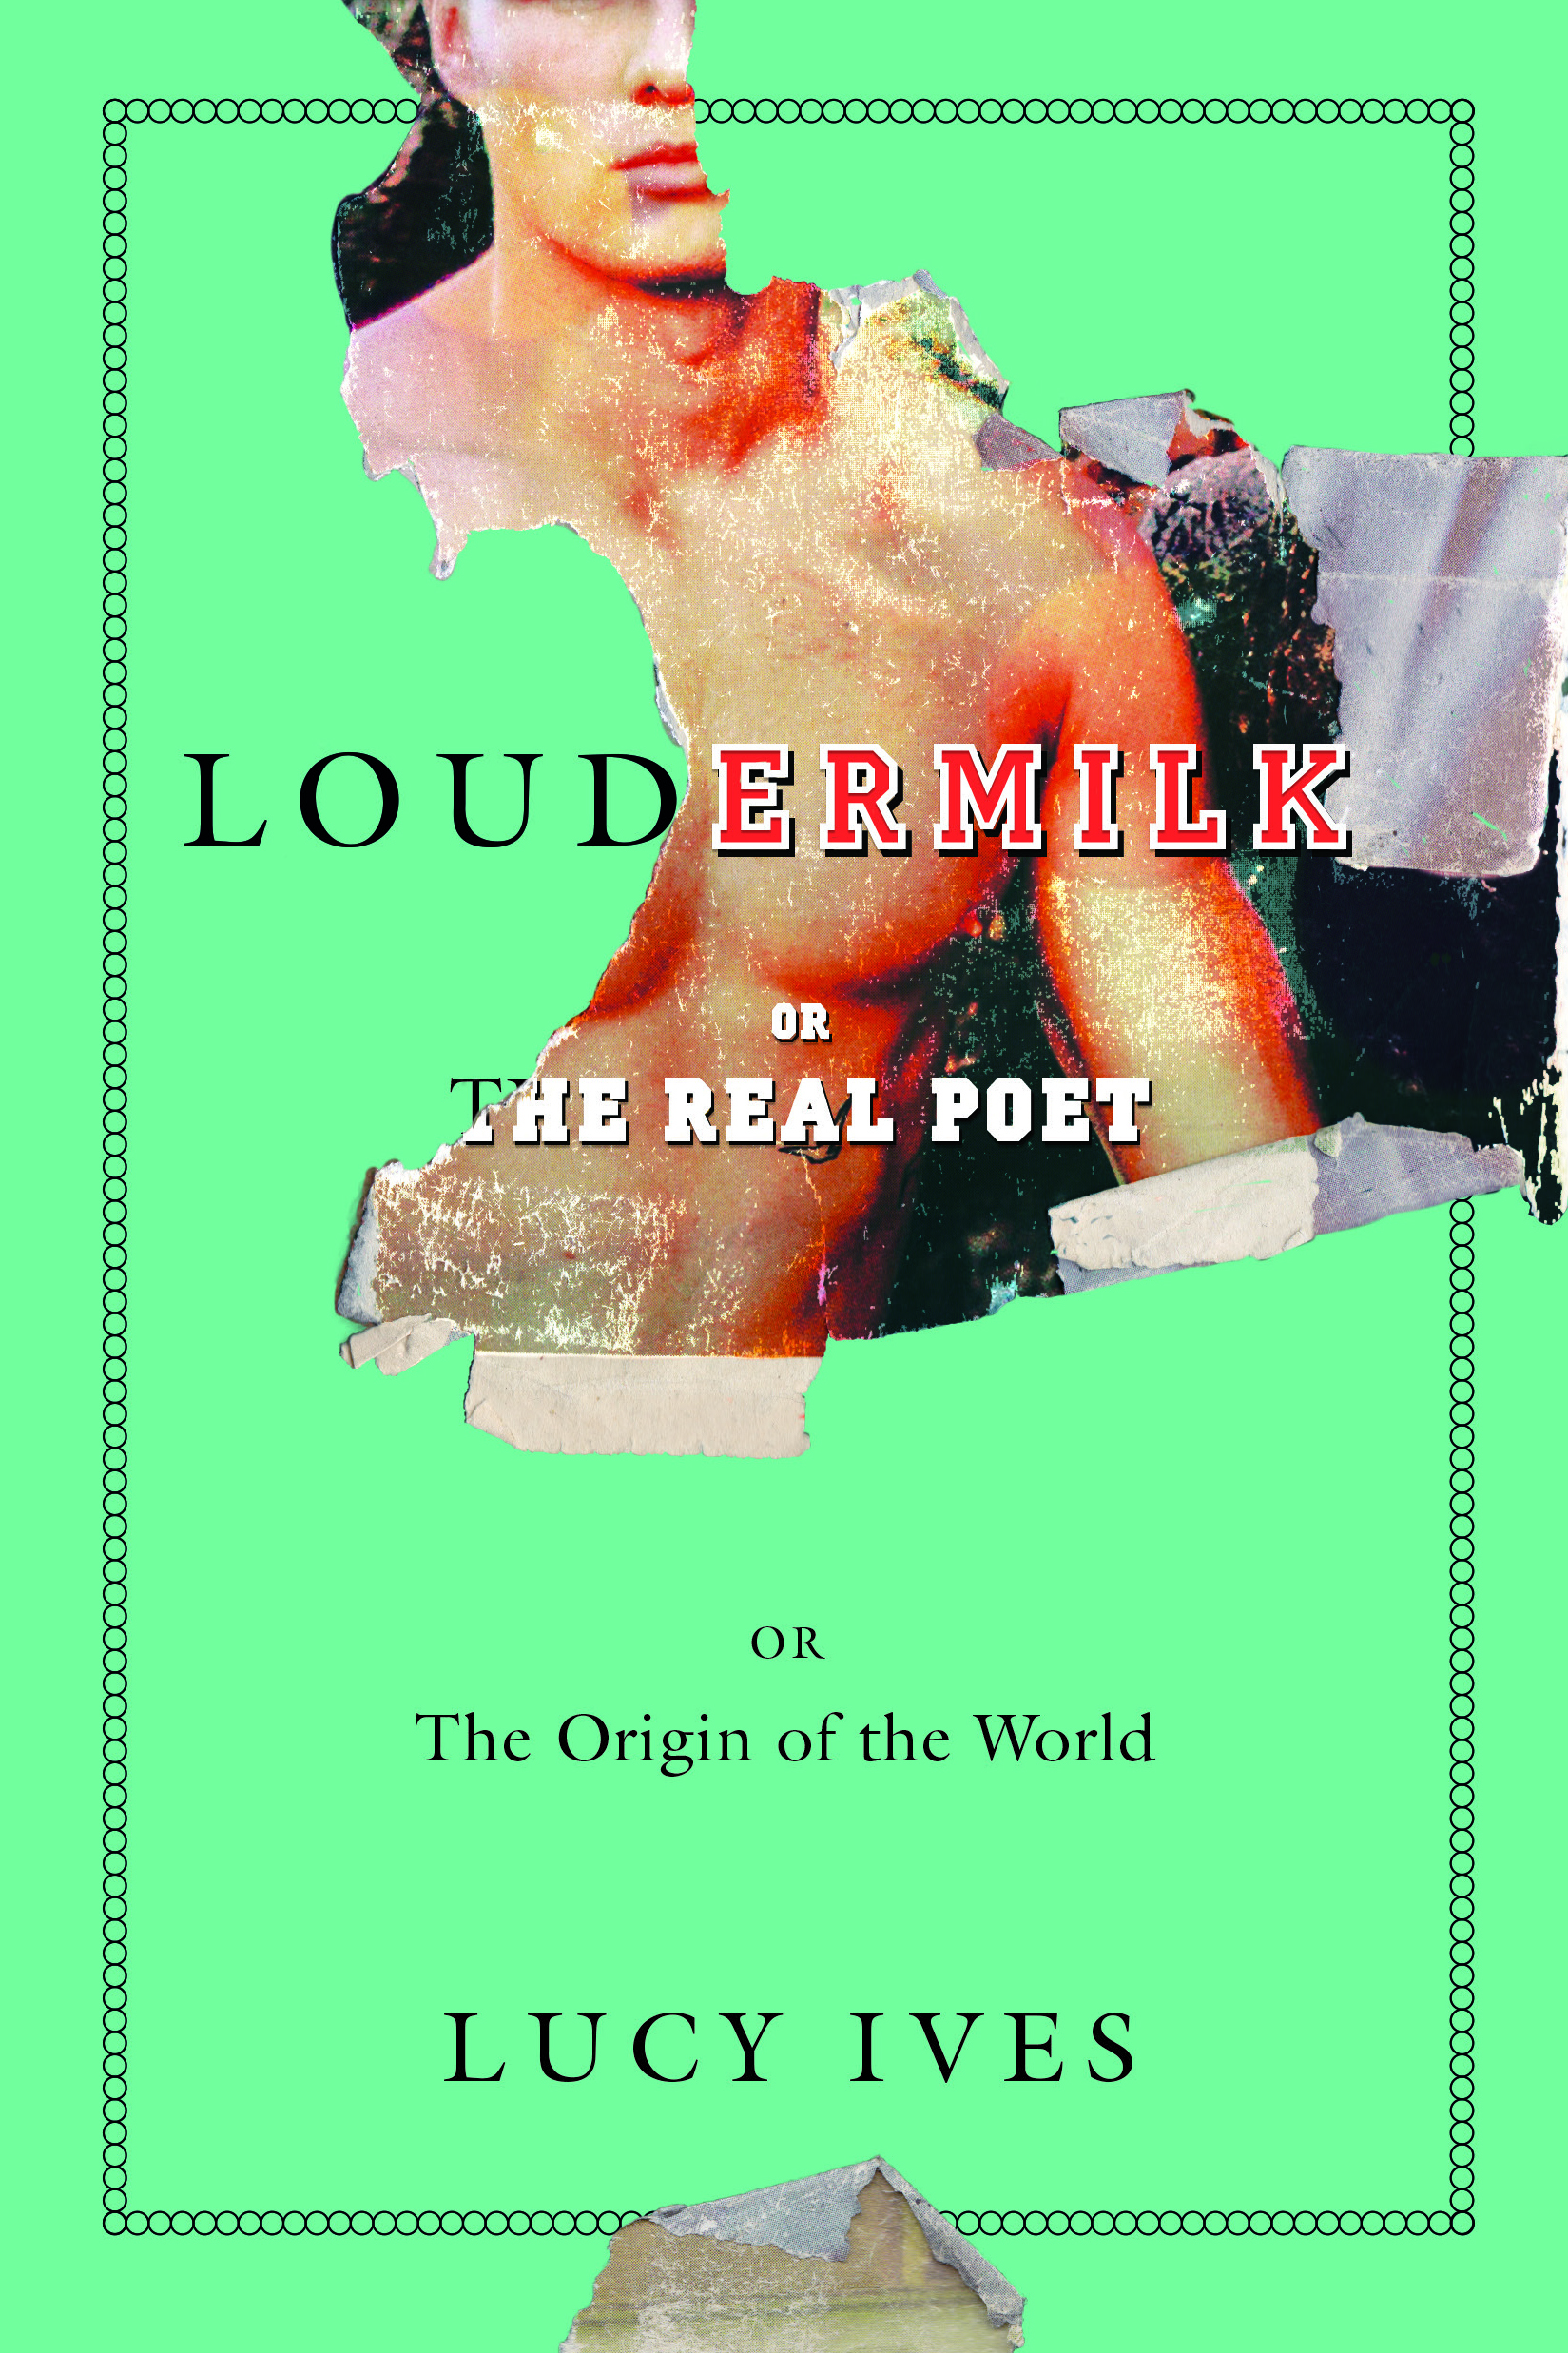 Book Launch: Loudermilk by Lucy Ives